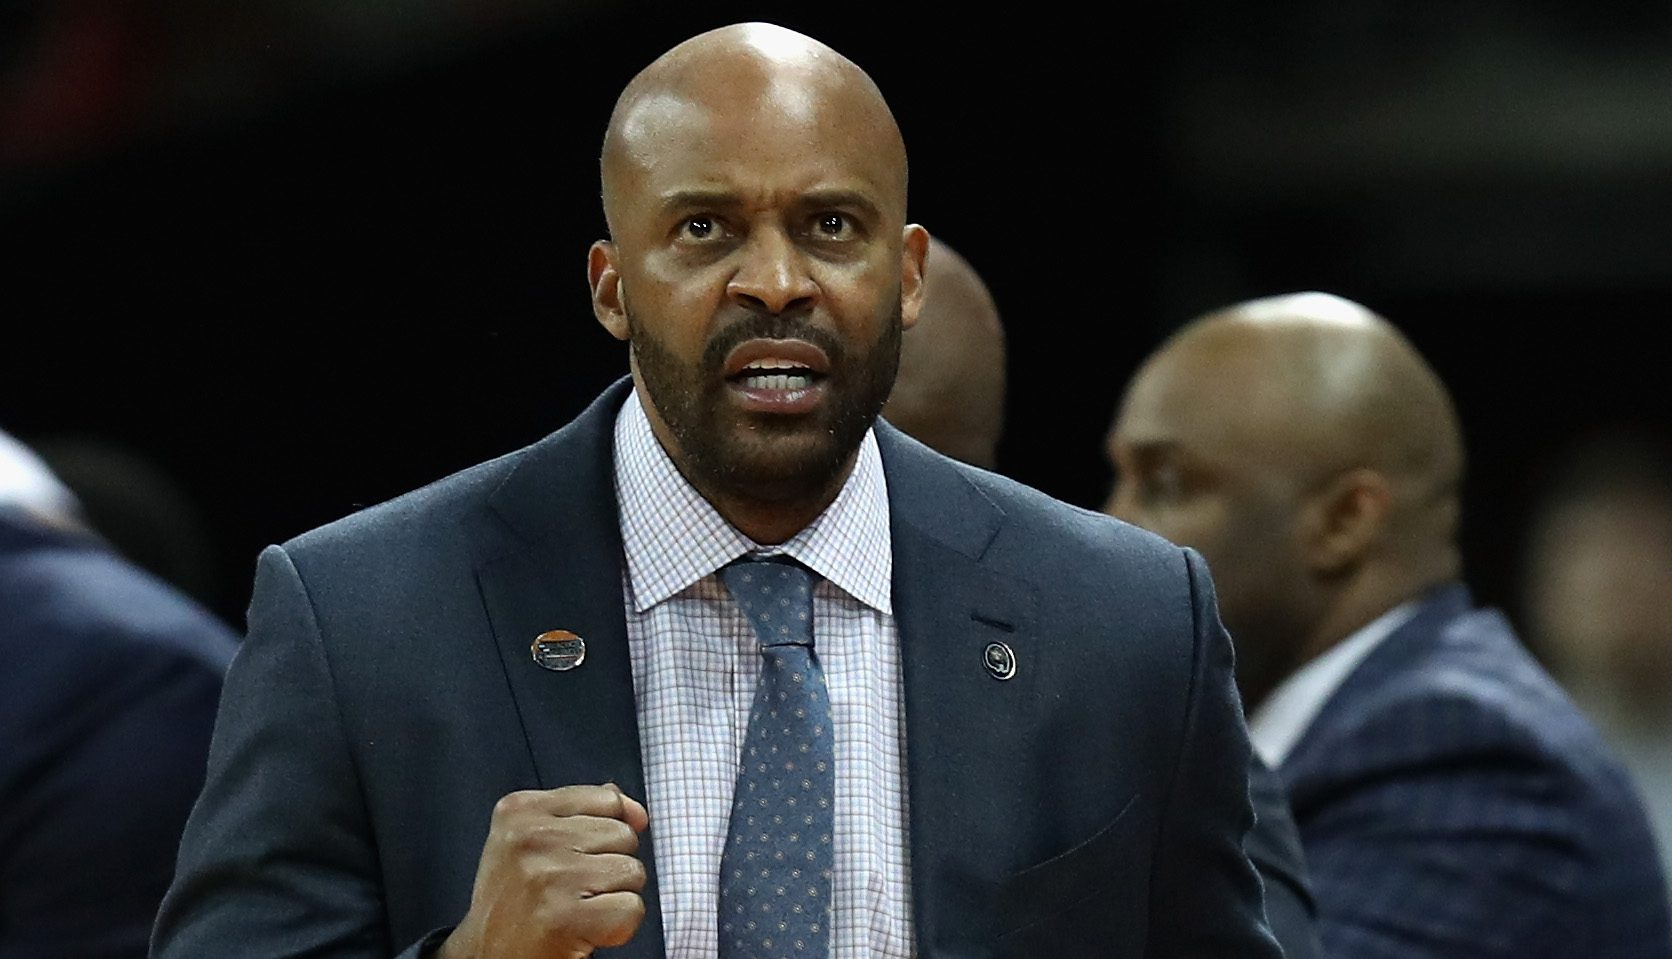 SPOKANE, WA - MARCH 18: Head coach Cuonzo Martin of the California Golden Bears reacts to a play in the second half against the Hawaii Warriors during the first round of the 2016 NCAA Men's Basketball Tournament at Spokane Veterans Memorial Arena on March 18, 2016 in Spokane, Washington. (Photo by Ezra Shaw/Getty Images)